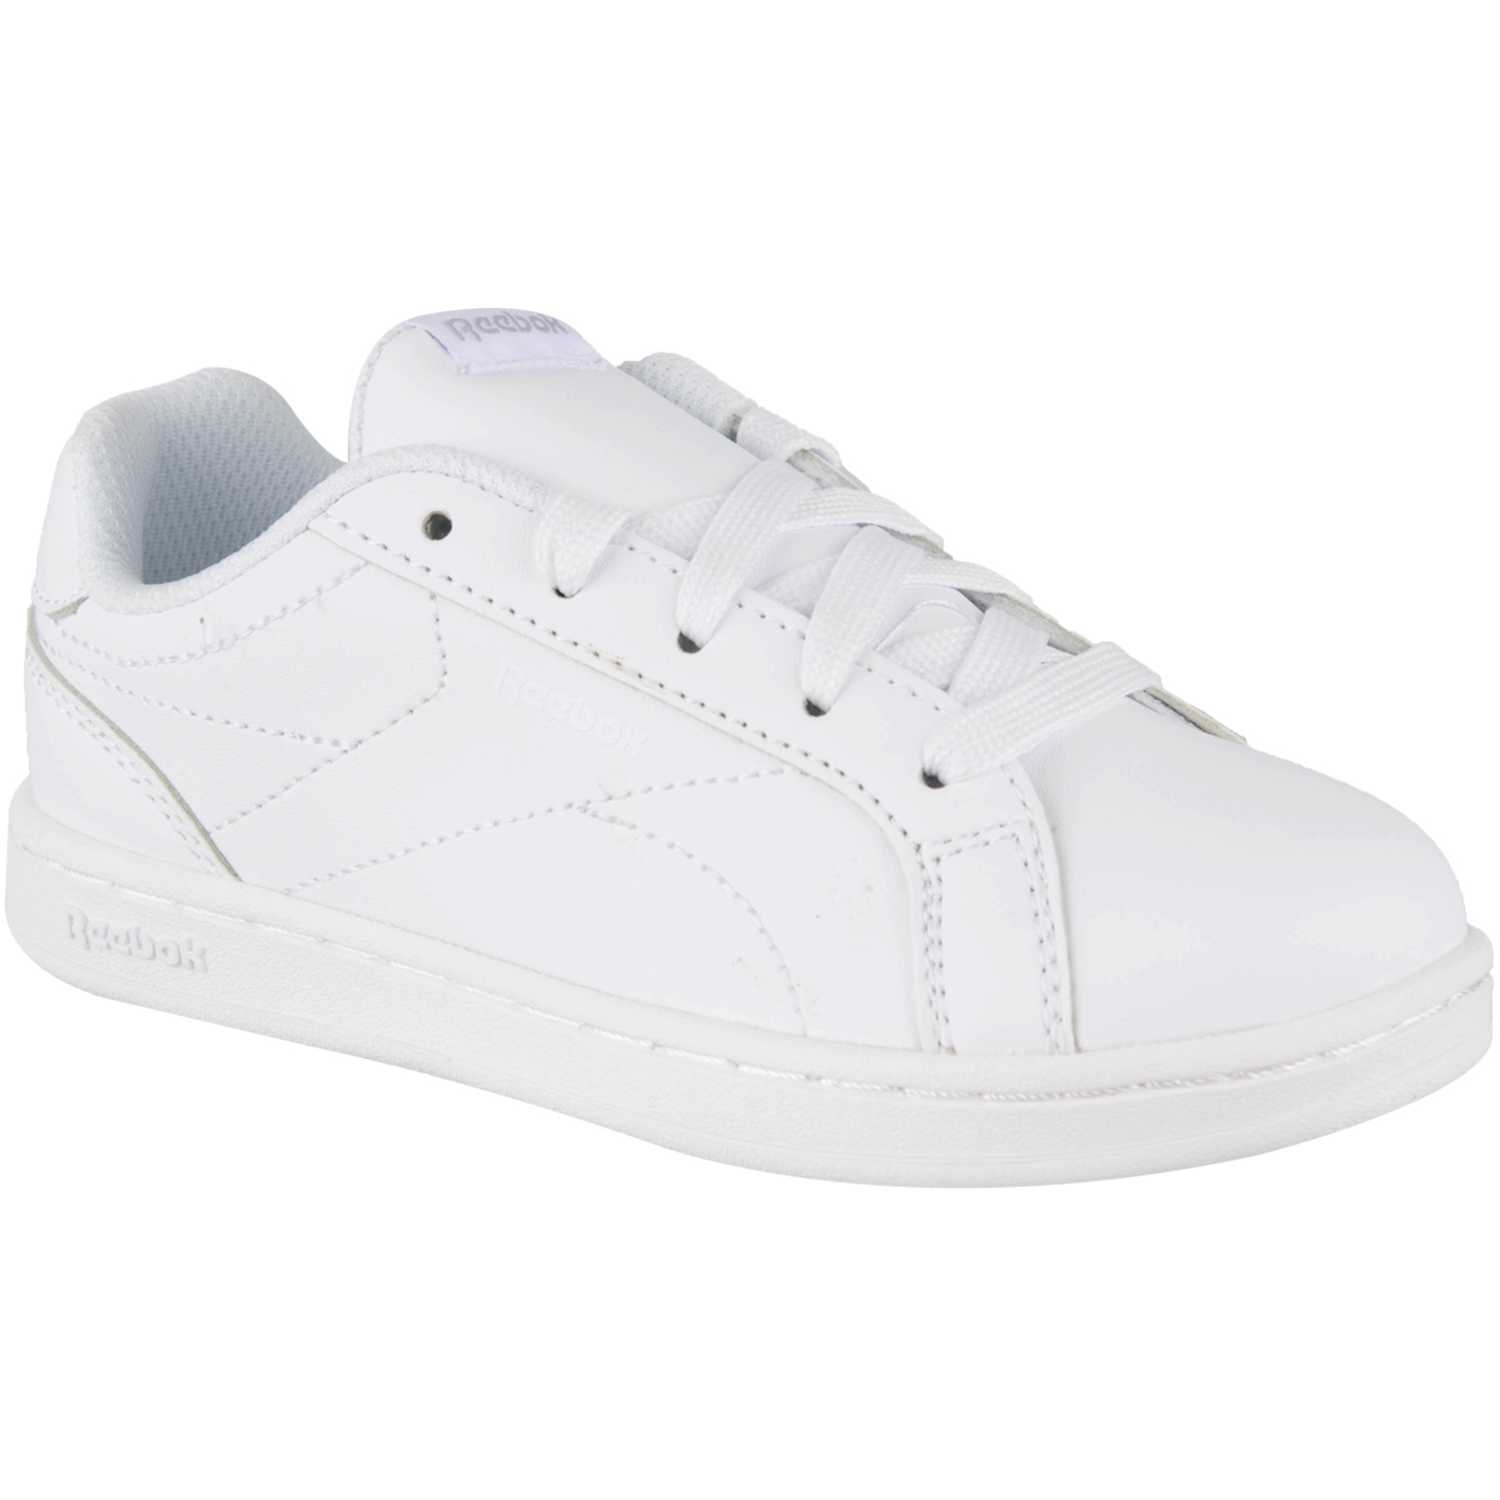 Reebok ROYAL COMPLETE CLN BLANCO / BLANCO Walking